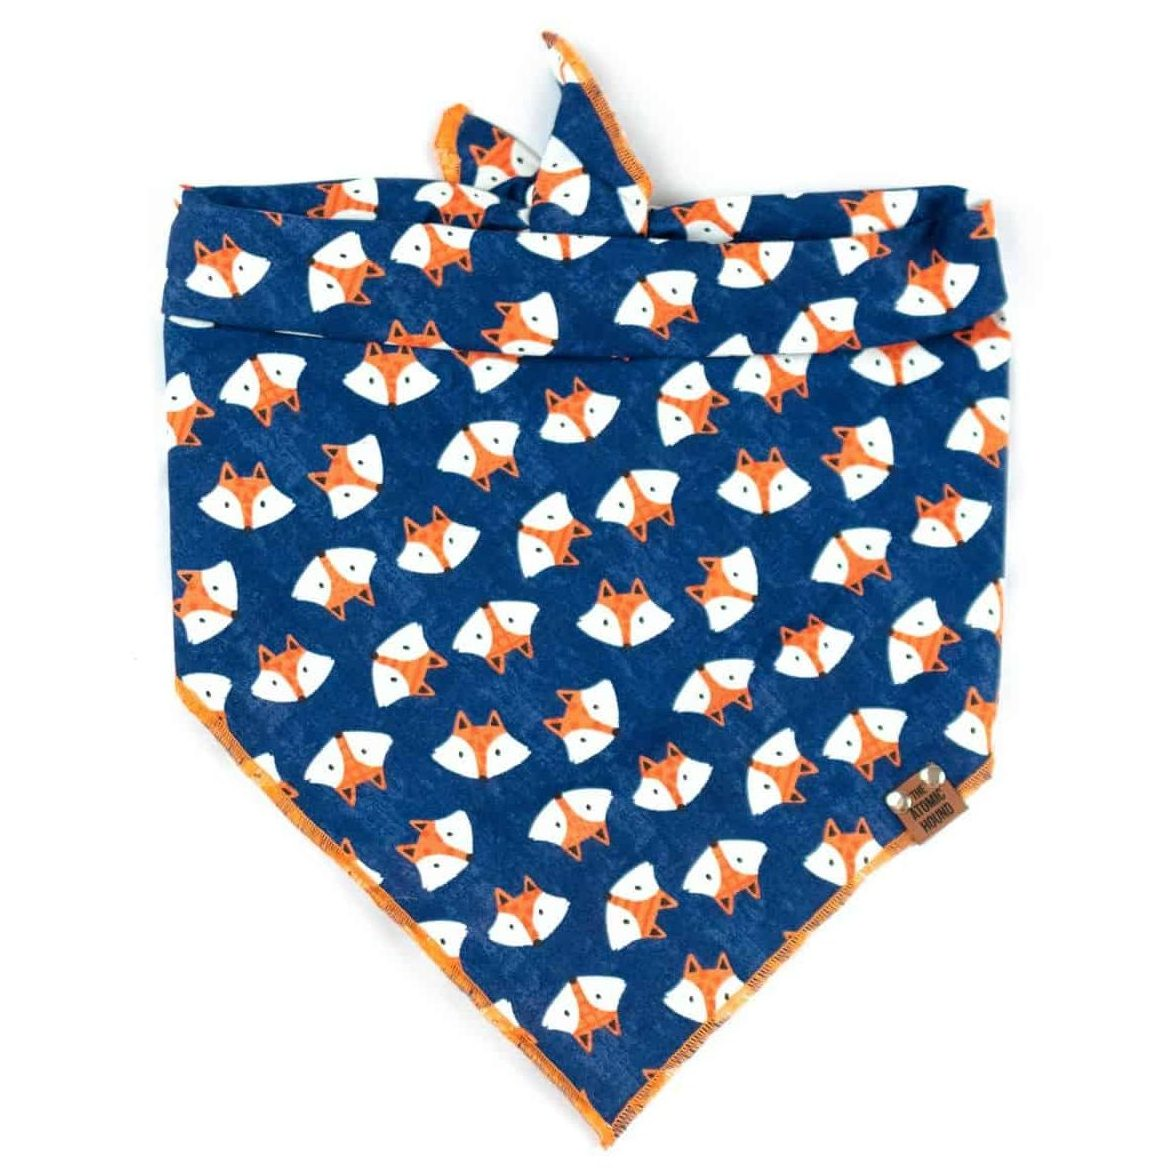 Navy blue dog bandana with orange and white fox print and orange hem